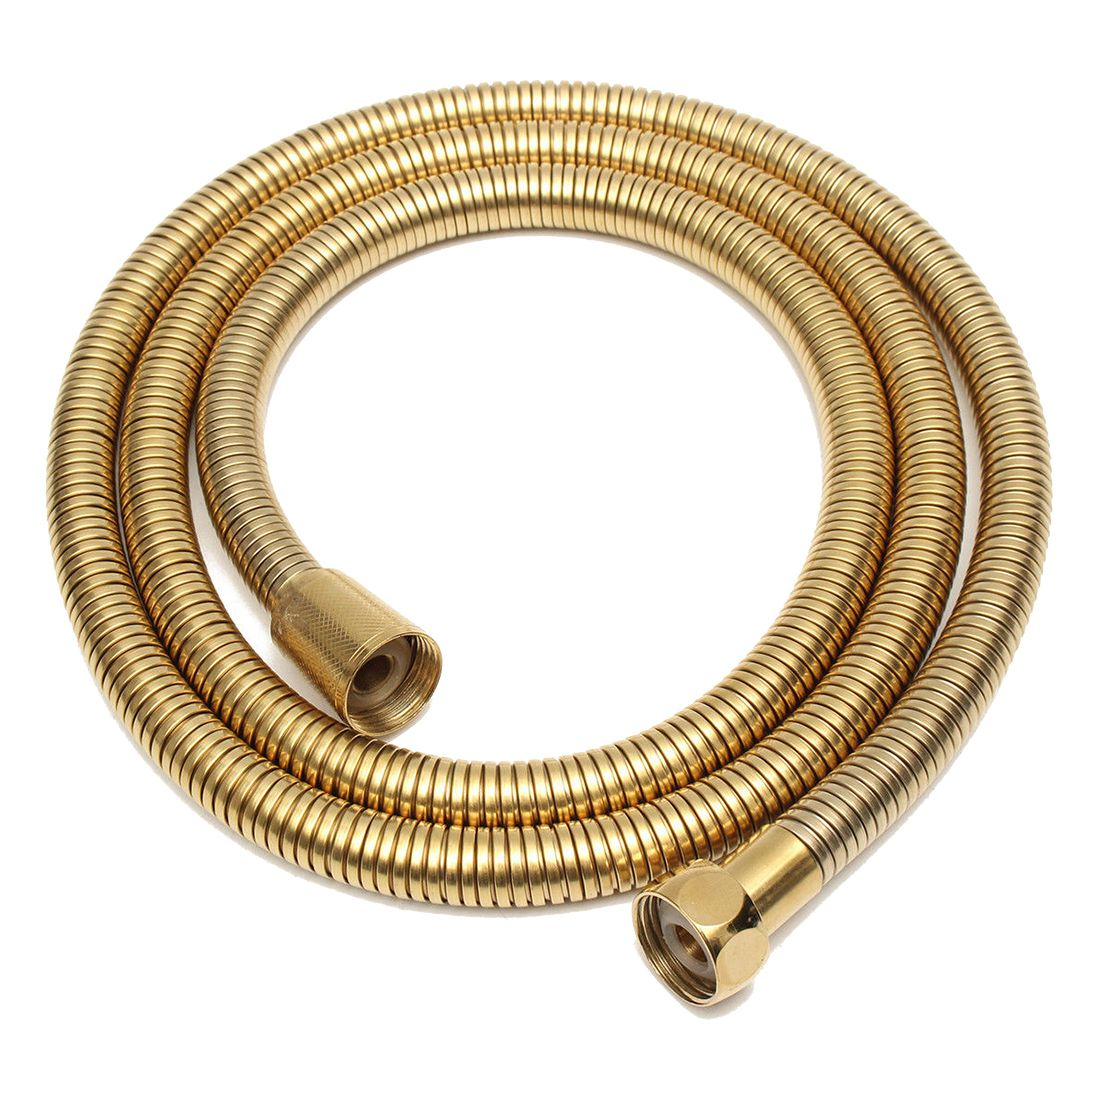 1.5m Gold Shower Head Hose Long Spiral Type Flexible Stainless Steel Bathroom Water Tube Showerhead Pipes Tube Plumbing Hoses